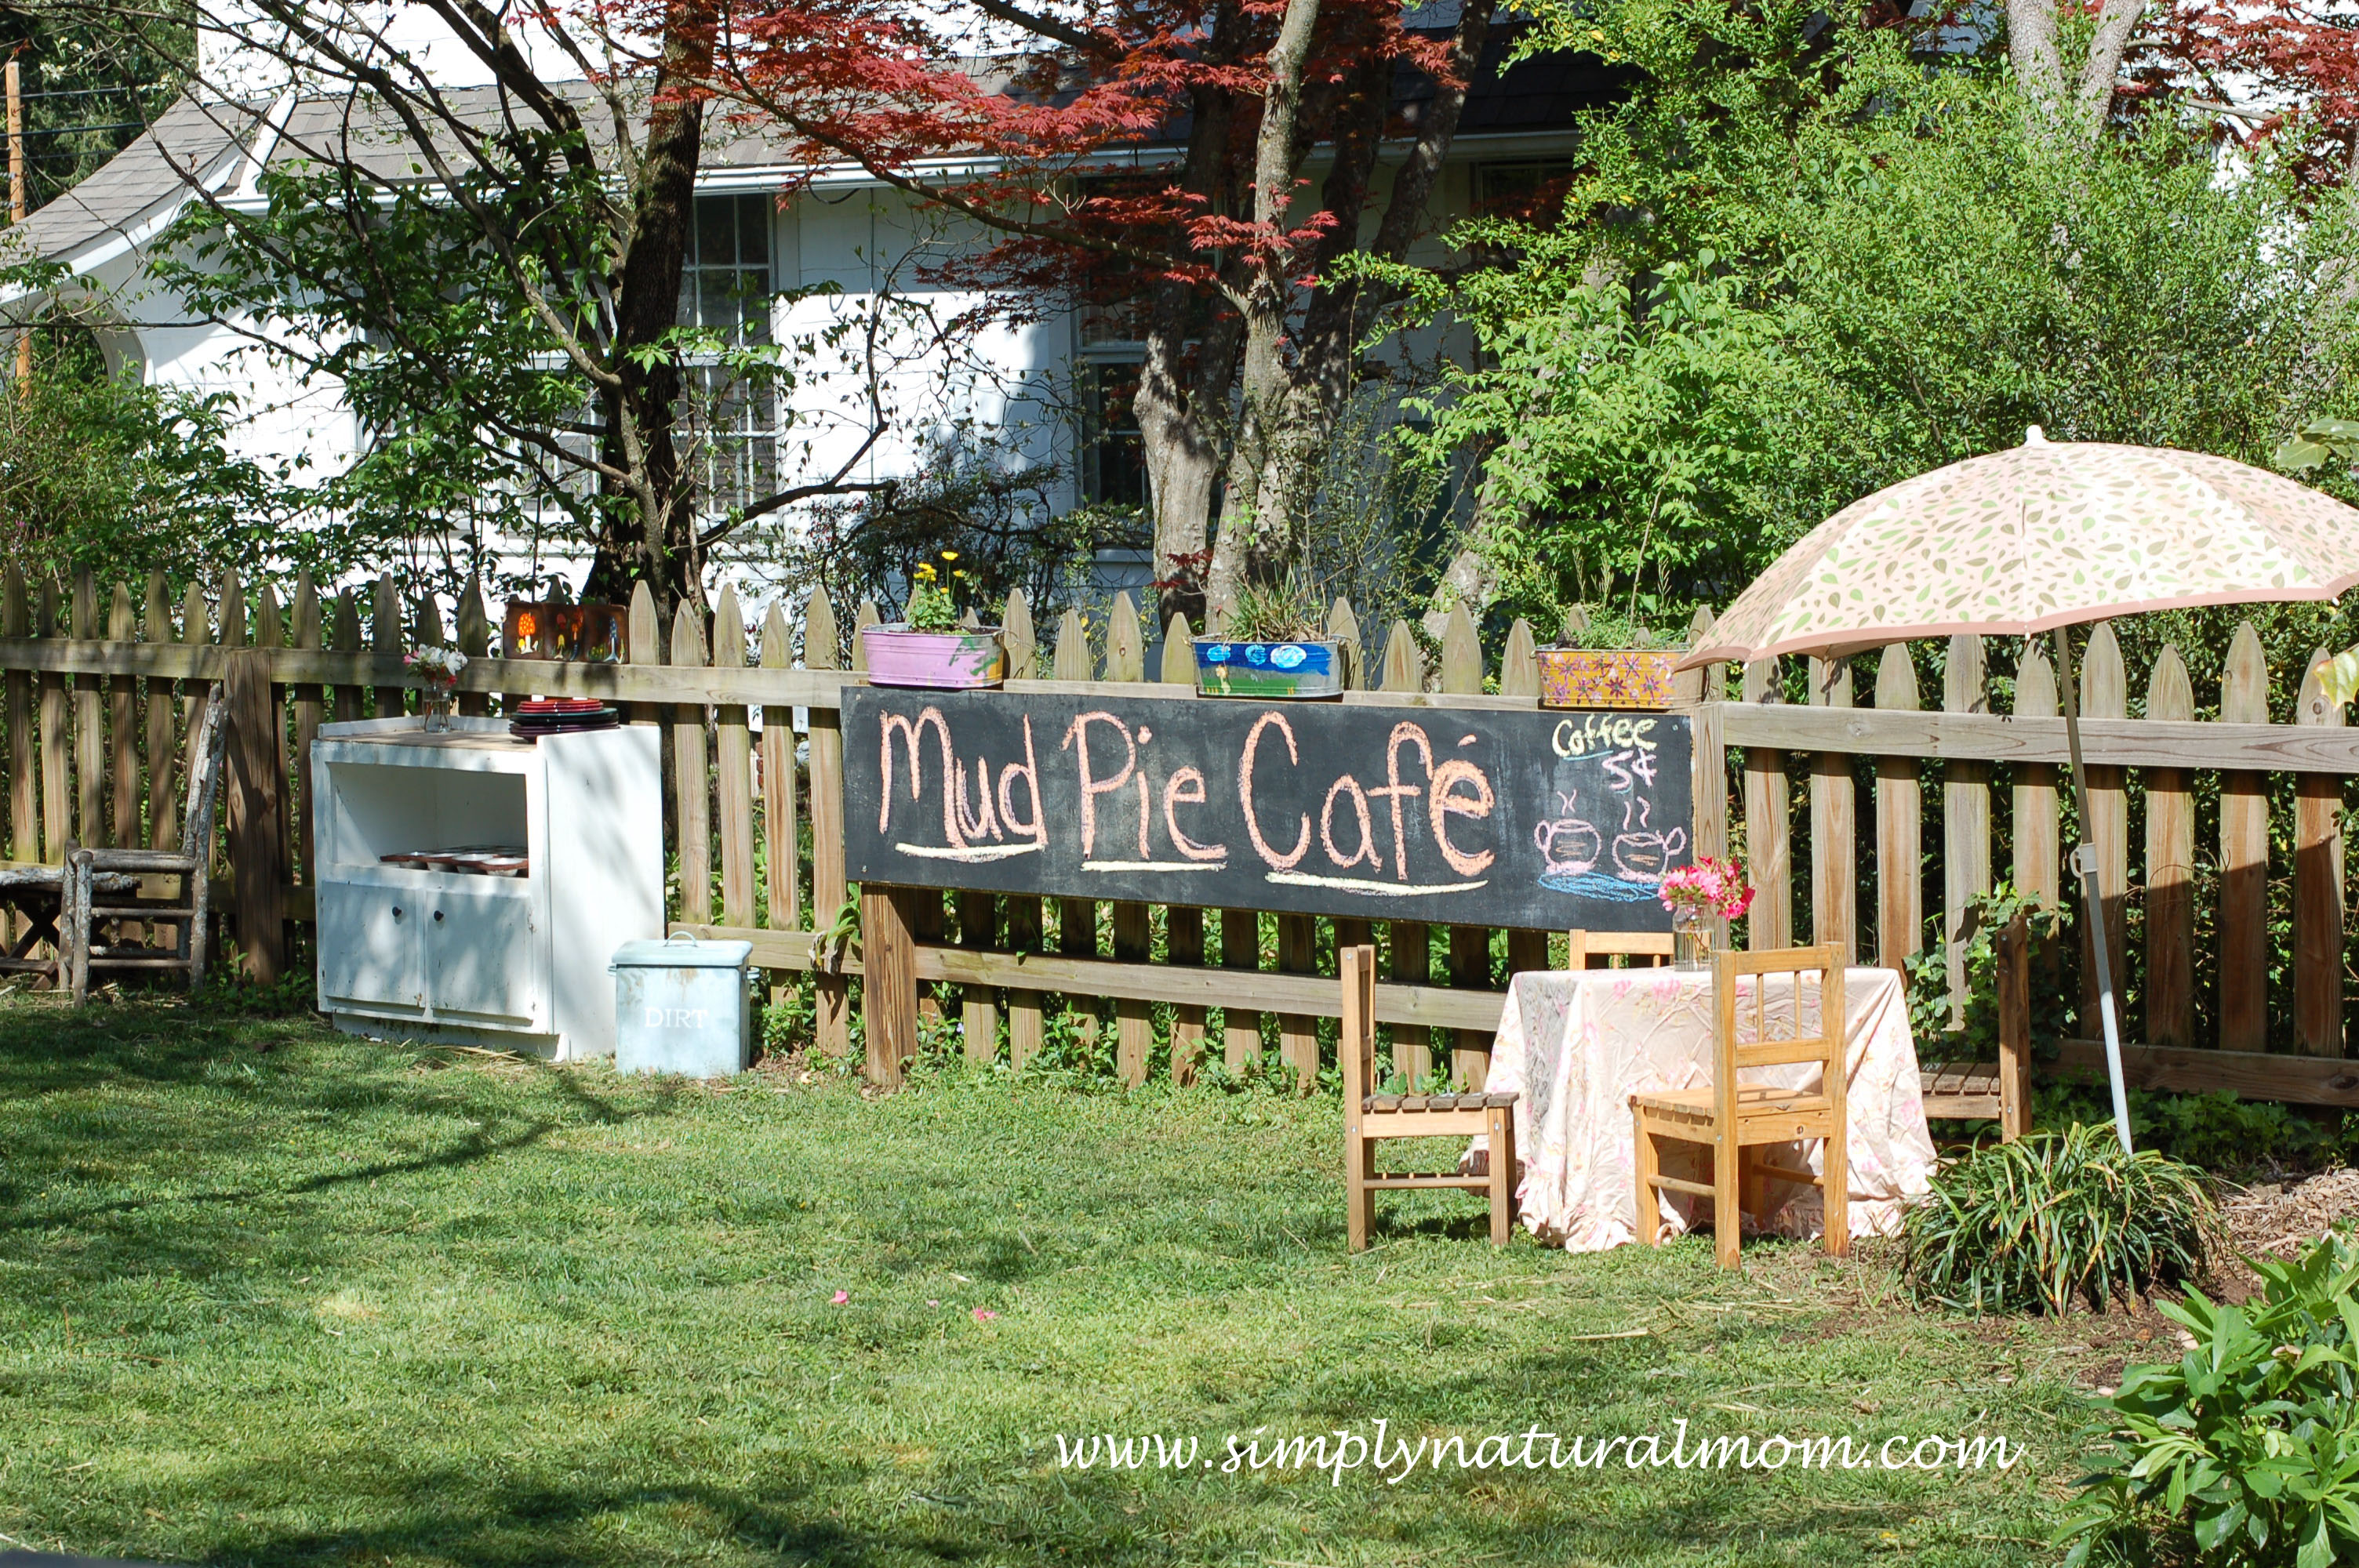 Kitchen Garden Cafe Mud Pie Cafe Brings Lots Of Backyard Fun Simply Natural Mom